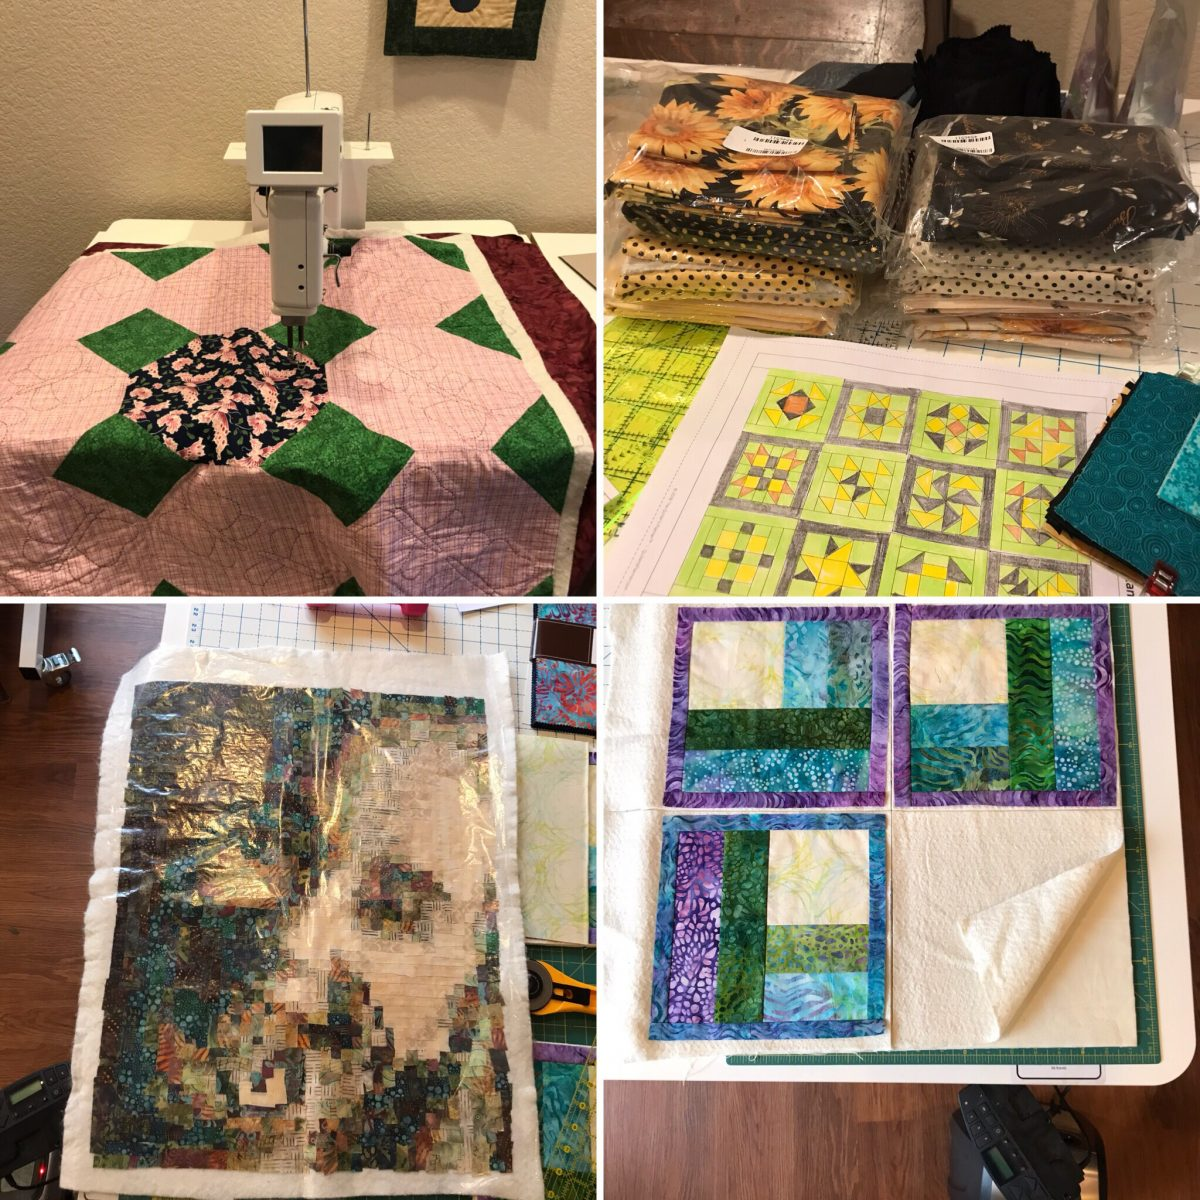 Quilt Diary: March & Quarter 1 Goals